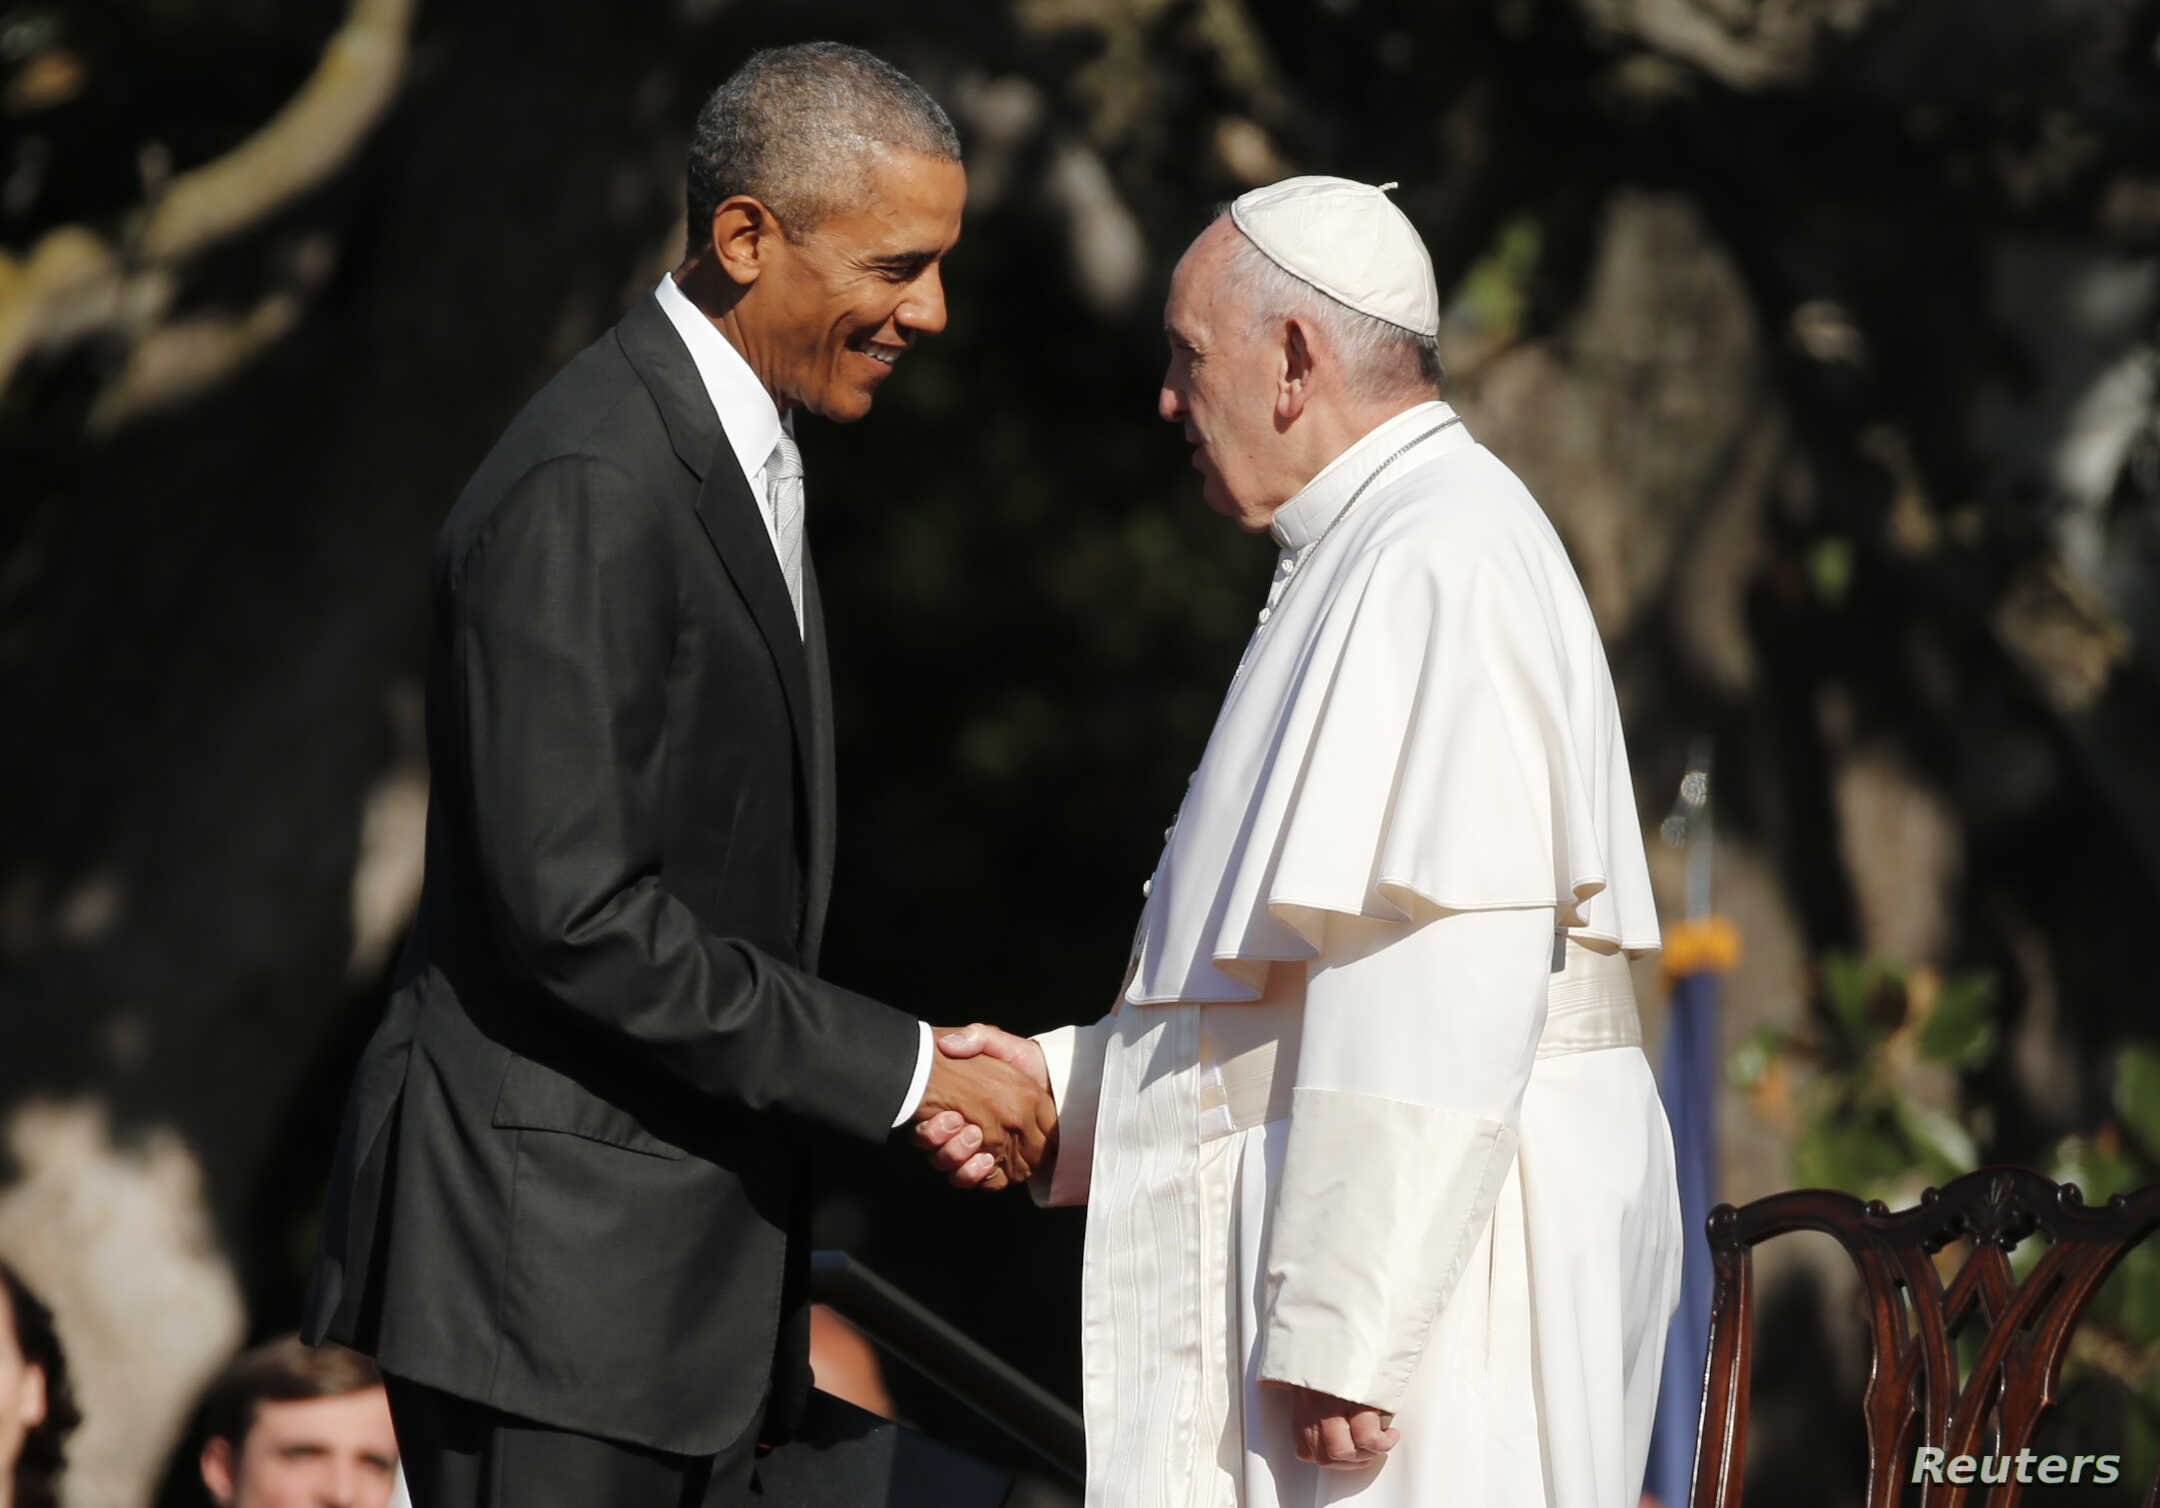 U.S. President Barack Obama, left, greets Pope Francis upon his arrival at the White House in Washington, Sept. 23, 2015.